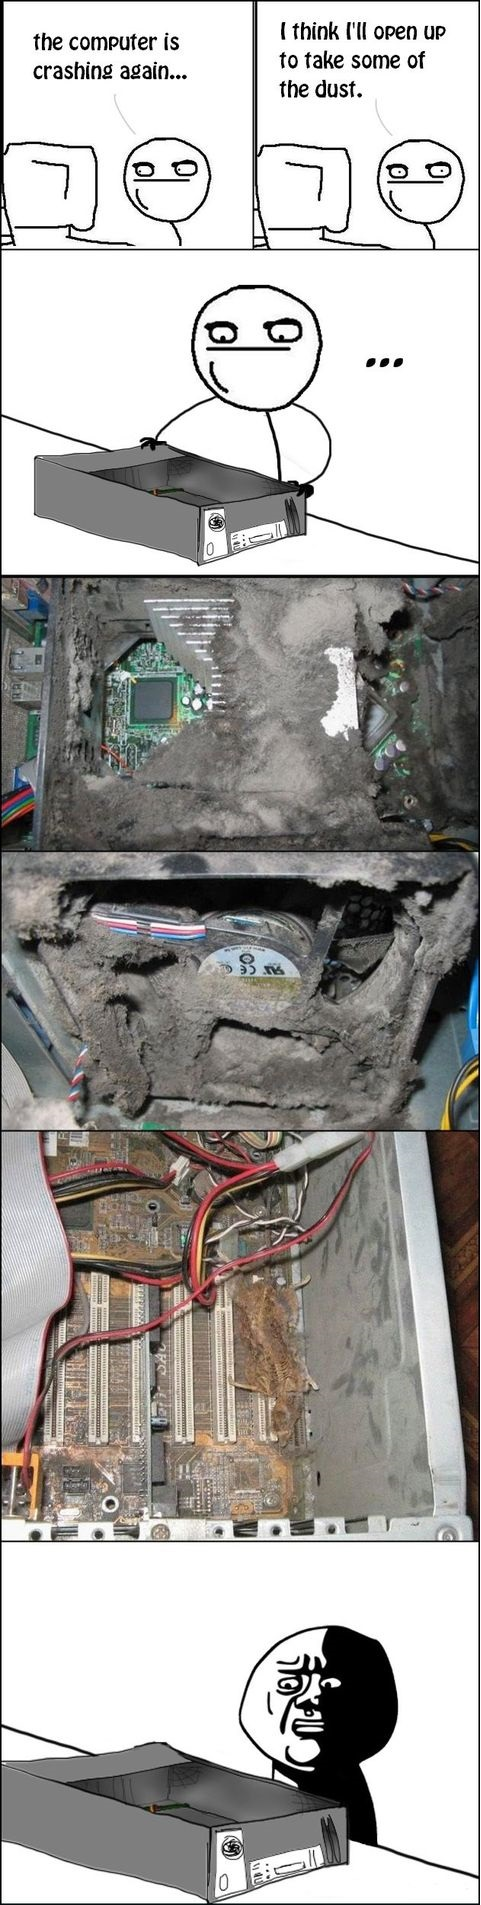 funny-picture-computer-dust